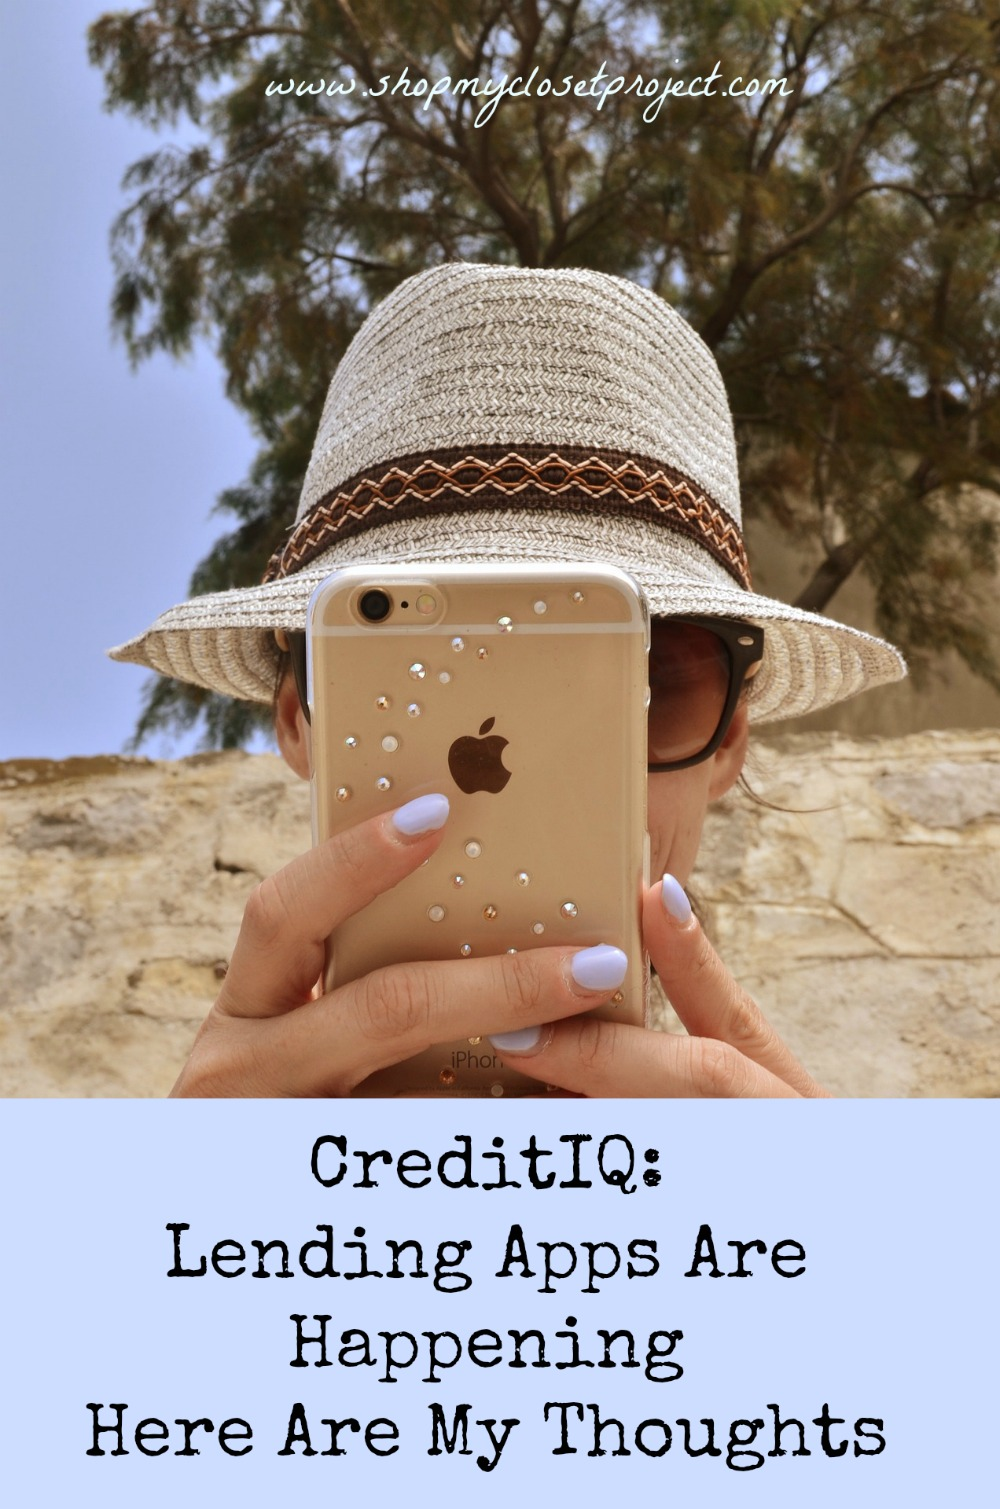 Credit IQ: Lending Apps Are Happening-Here Are My Thoughts